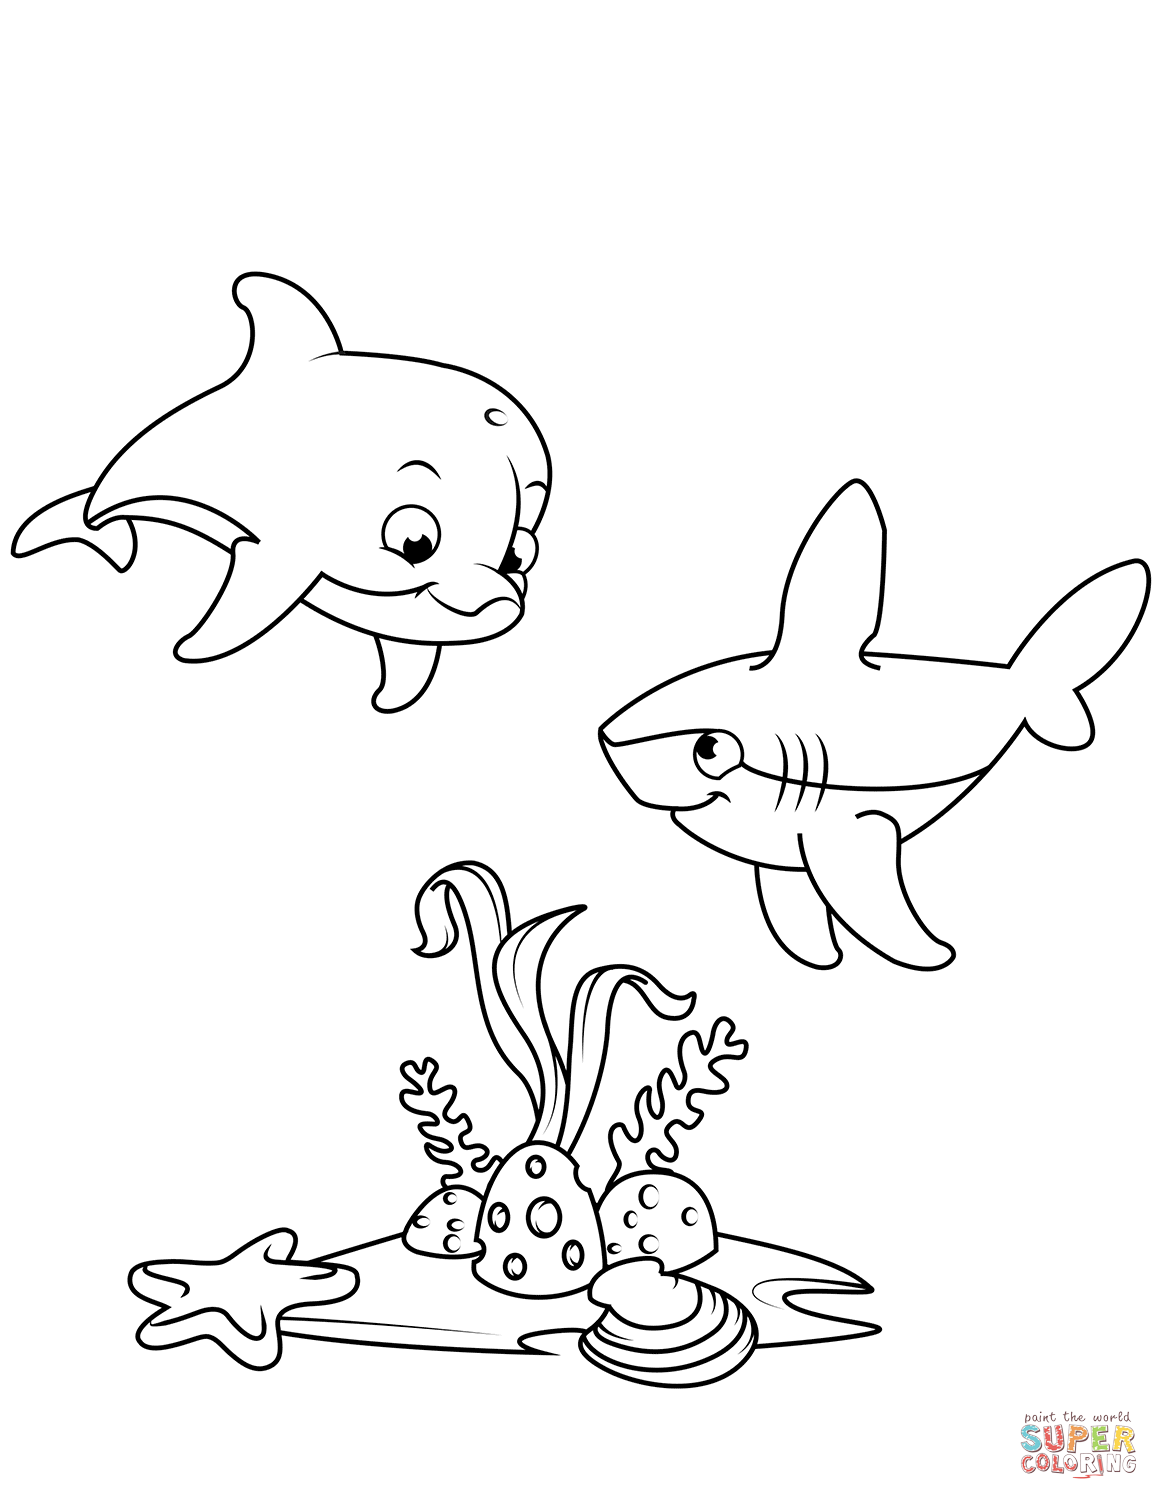 Cute Dolphin And Shark Coloring Page